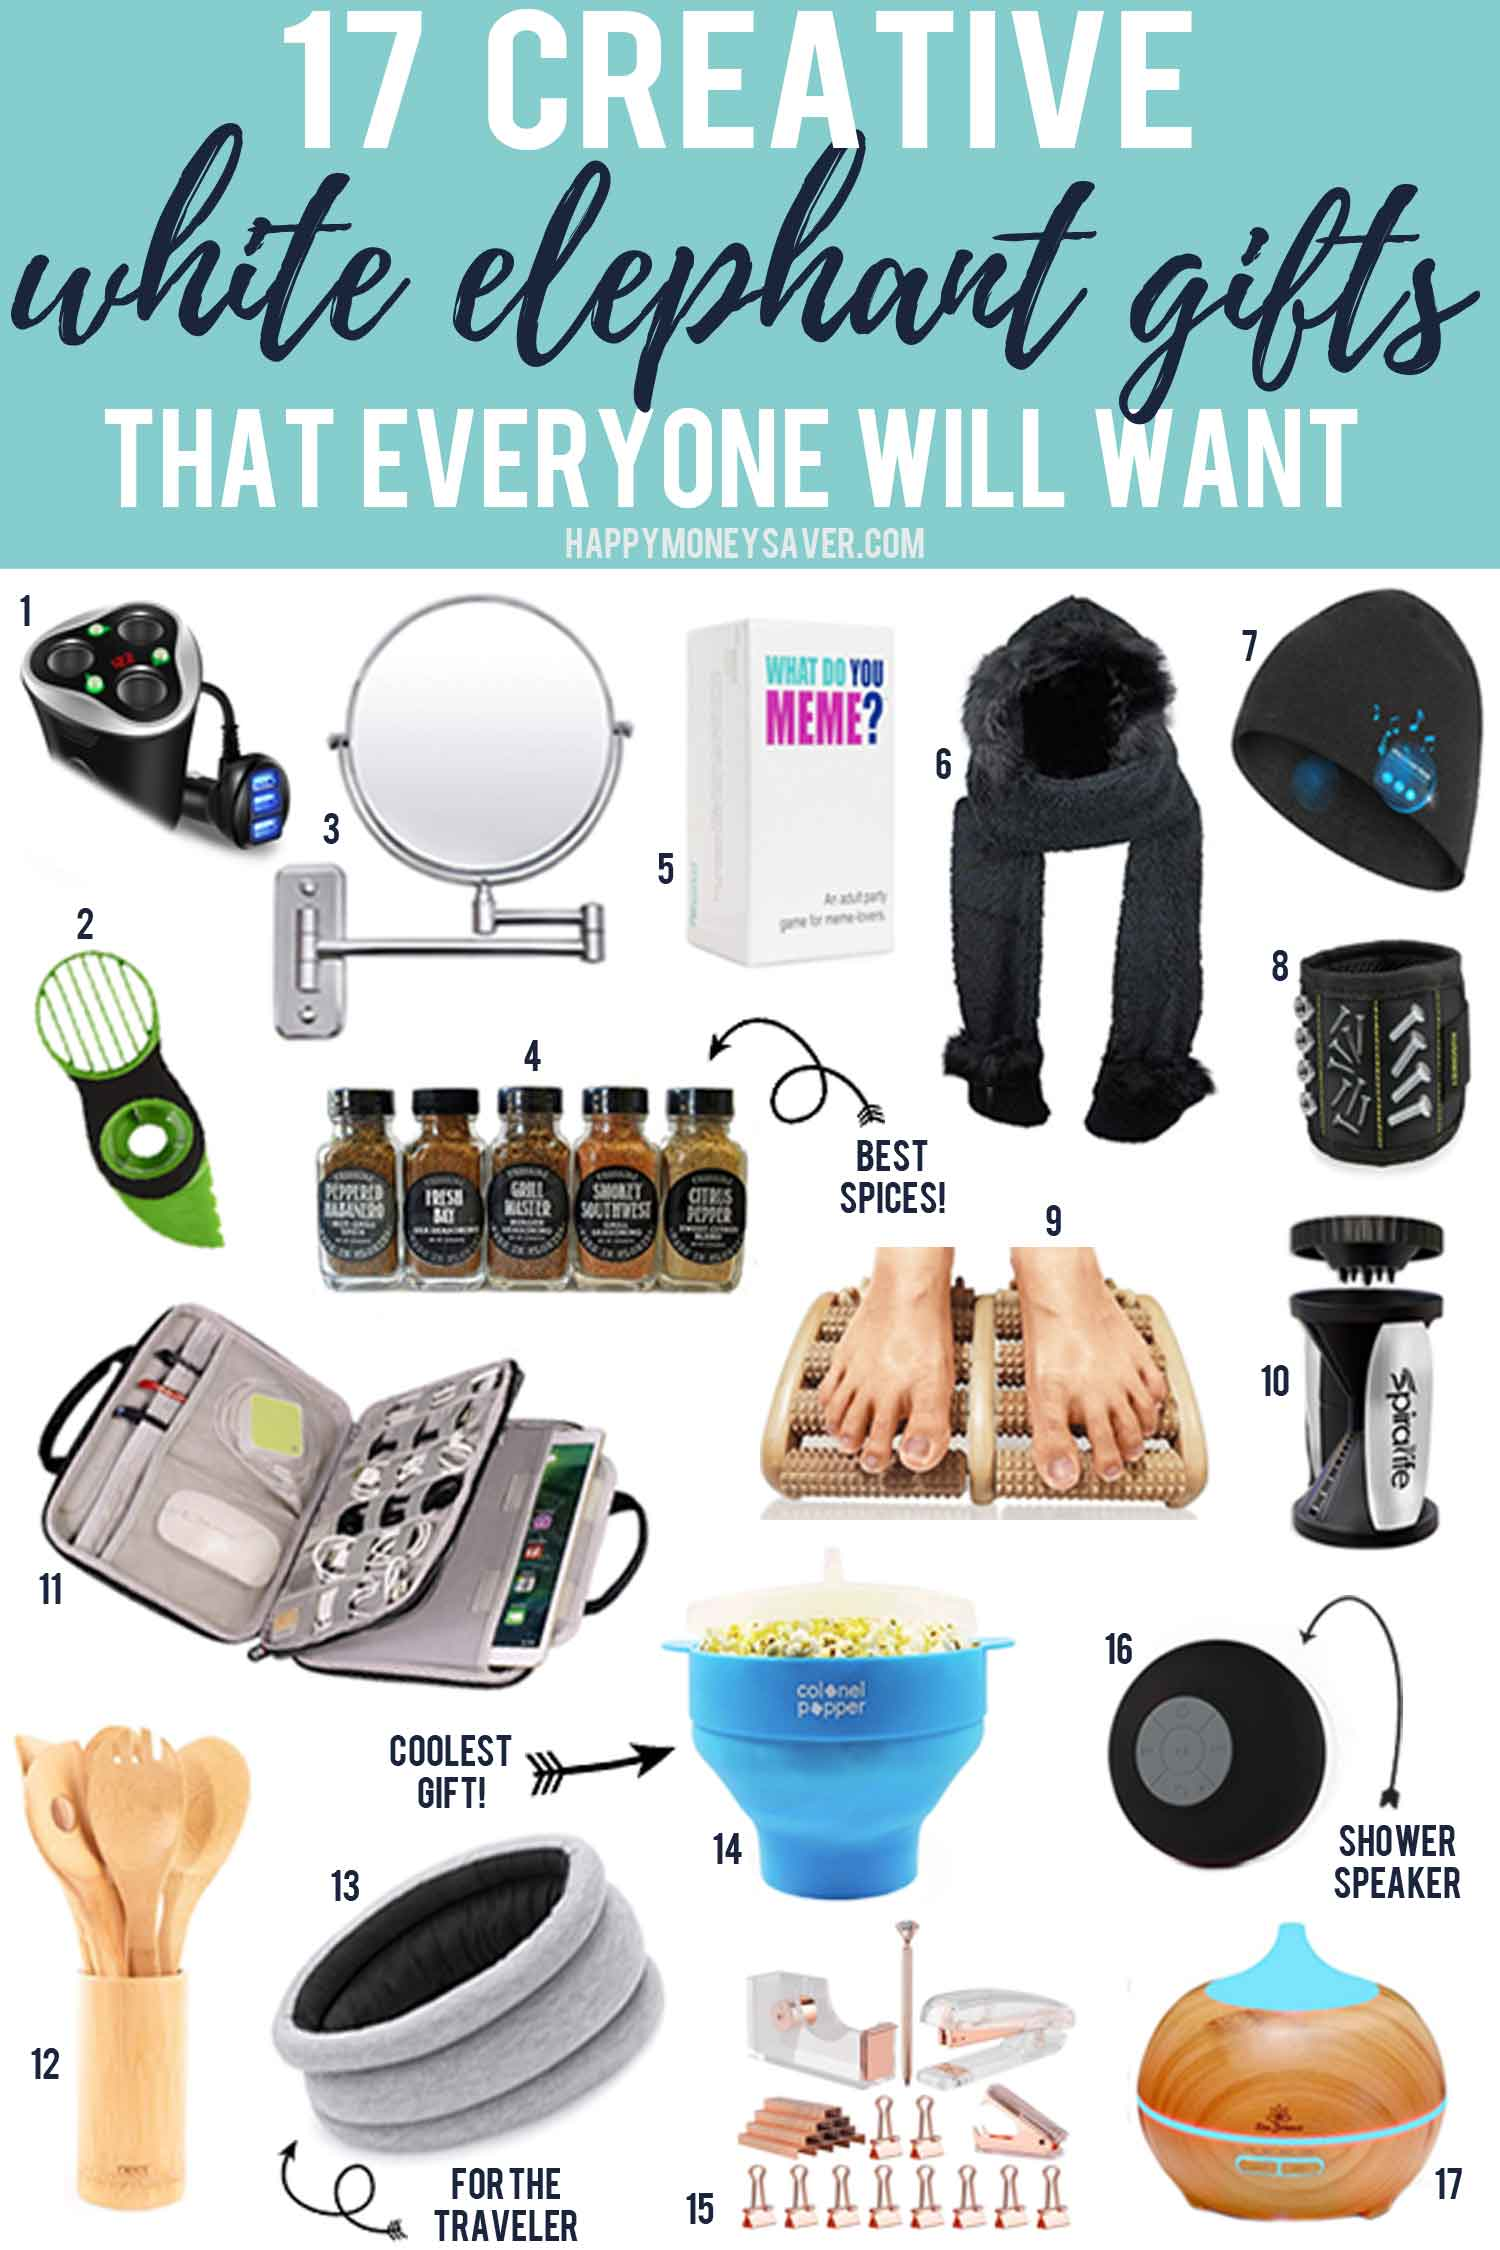 17 Creative White Elephant gifts that everyone will want with pictures of creative items such as popcorn maker, spices, shower speaker and more.